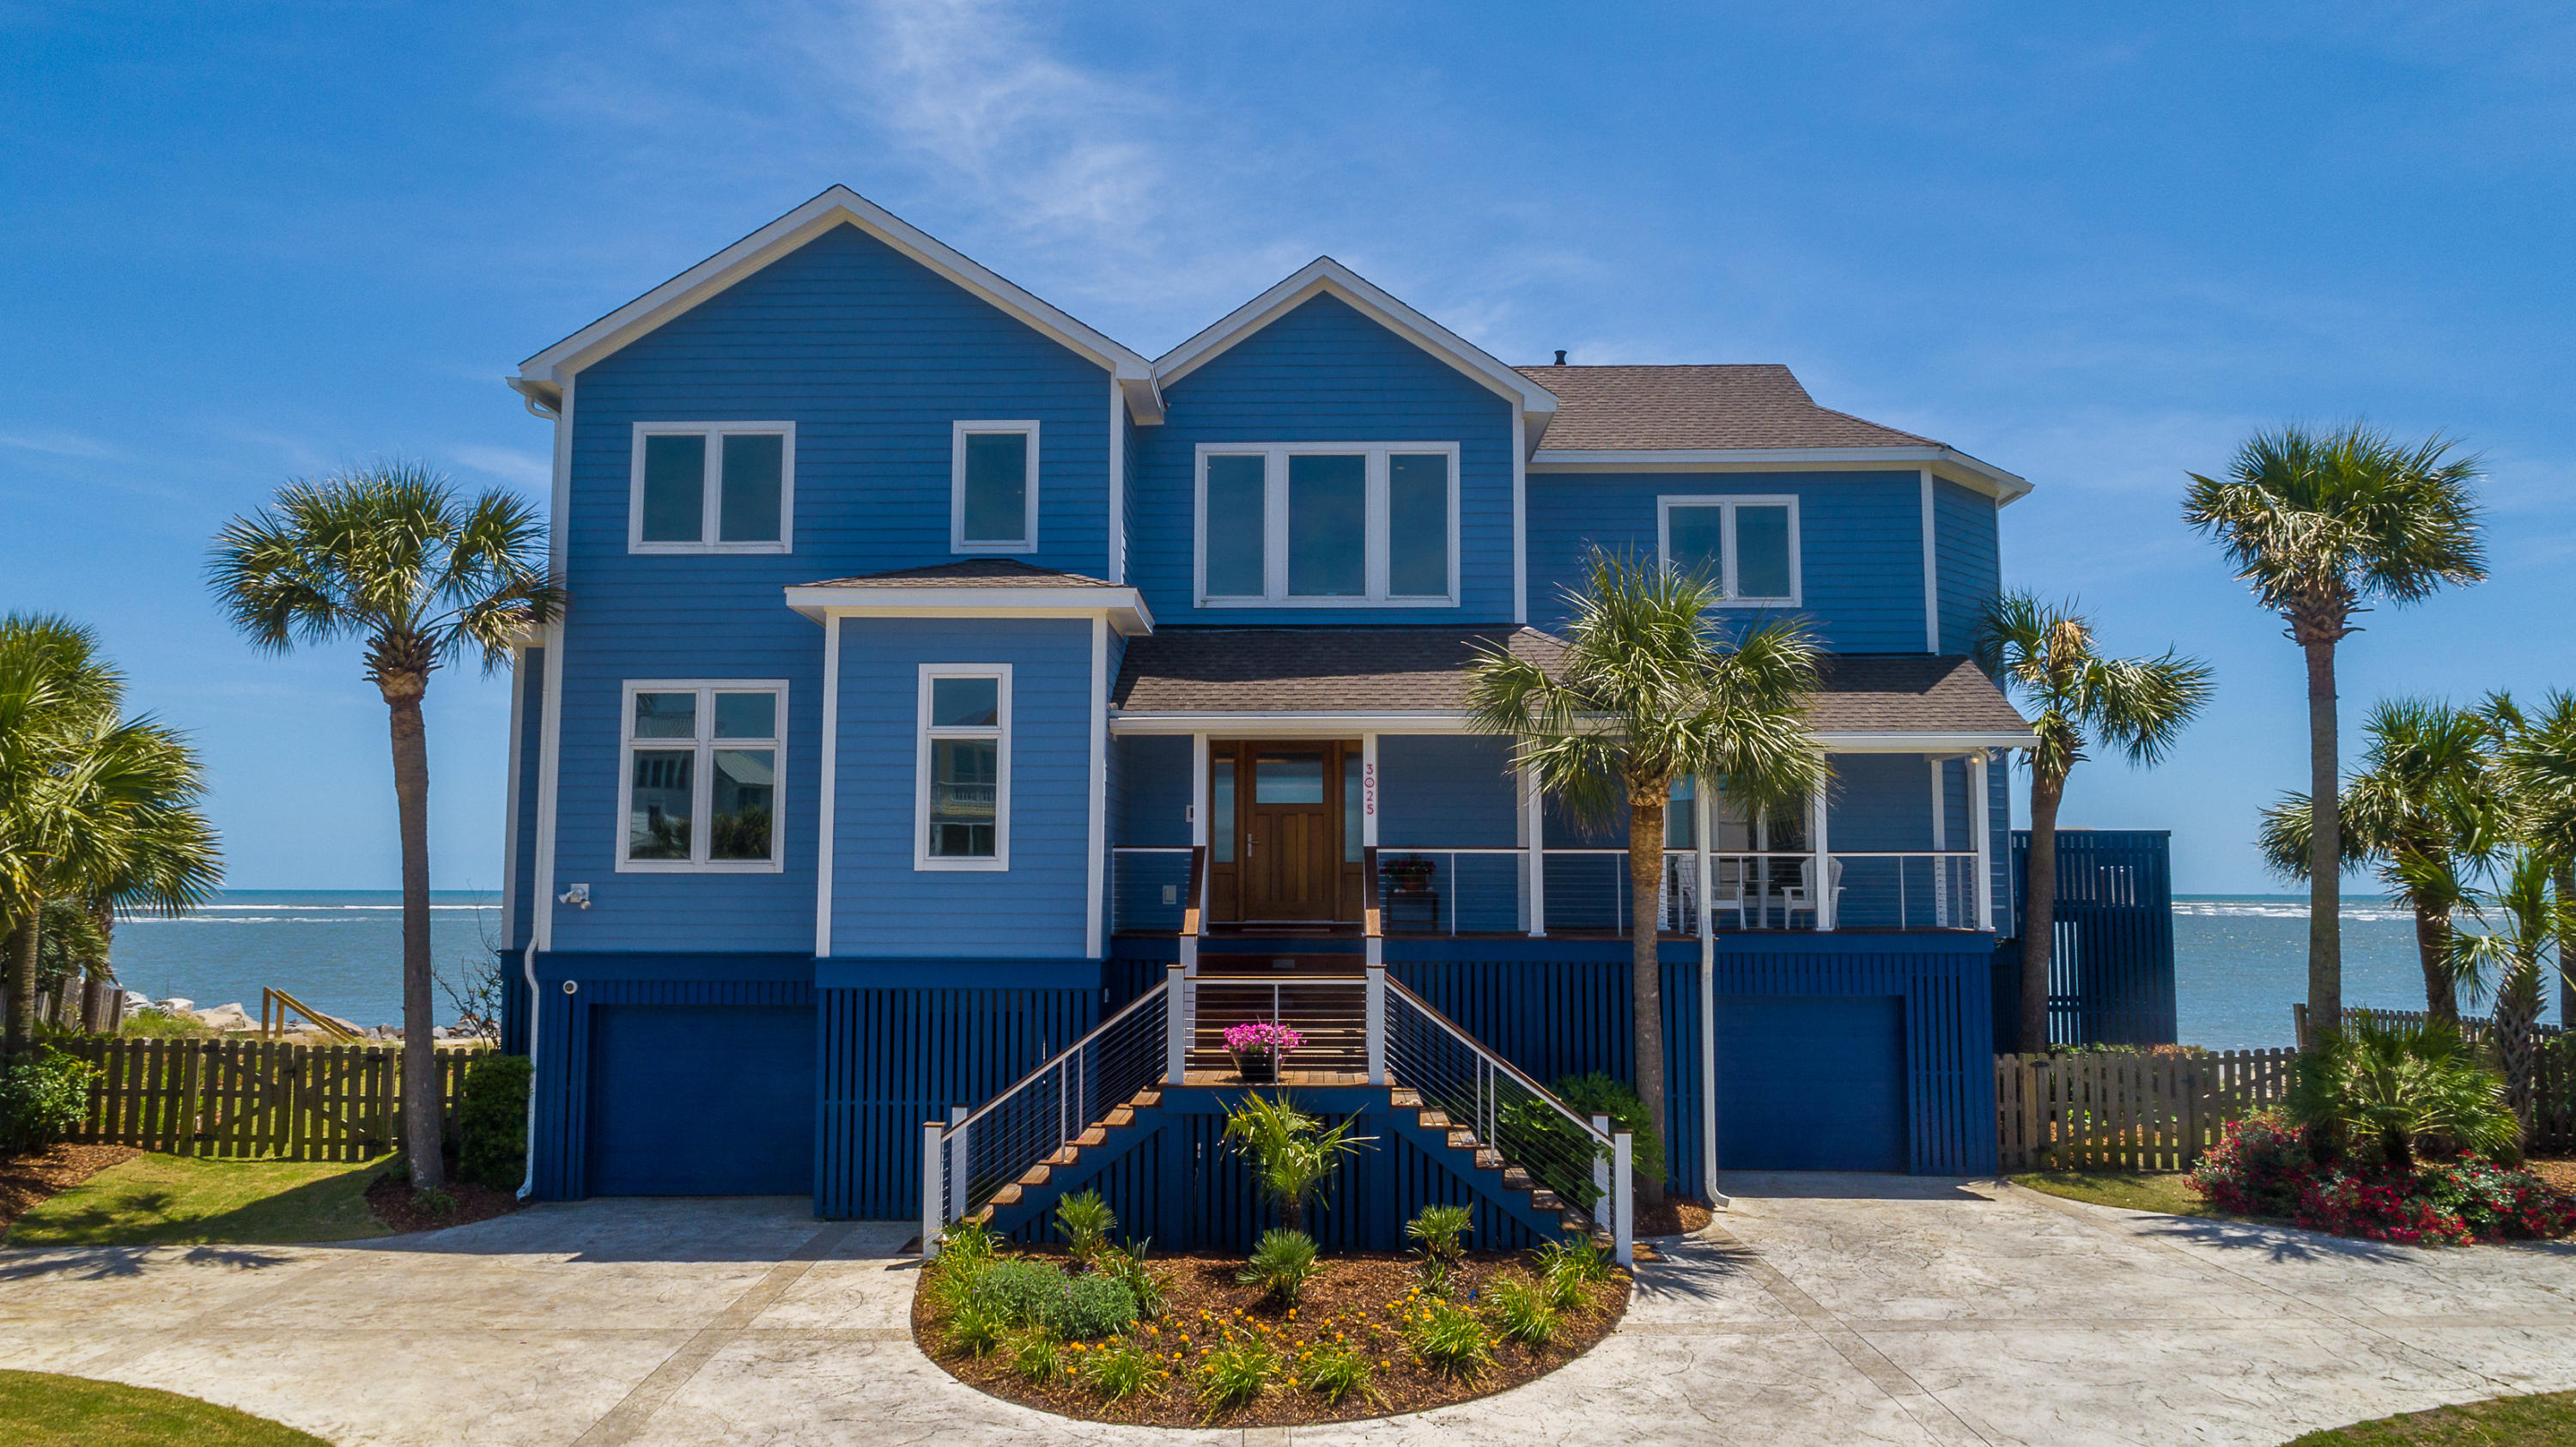 Photo of 3025 Marshall Blvd, Sullivan's Island, SC 29482